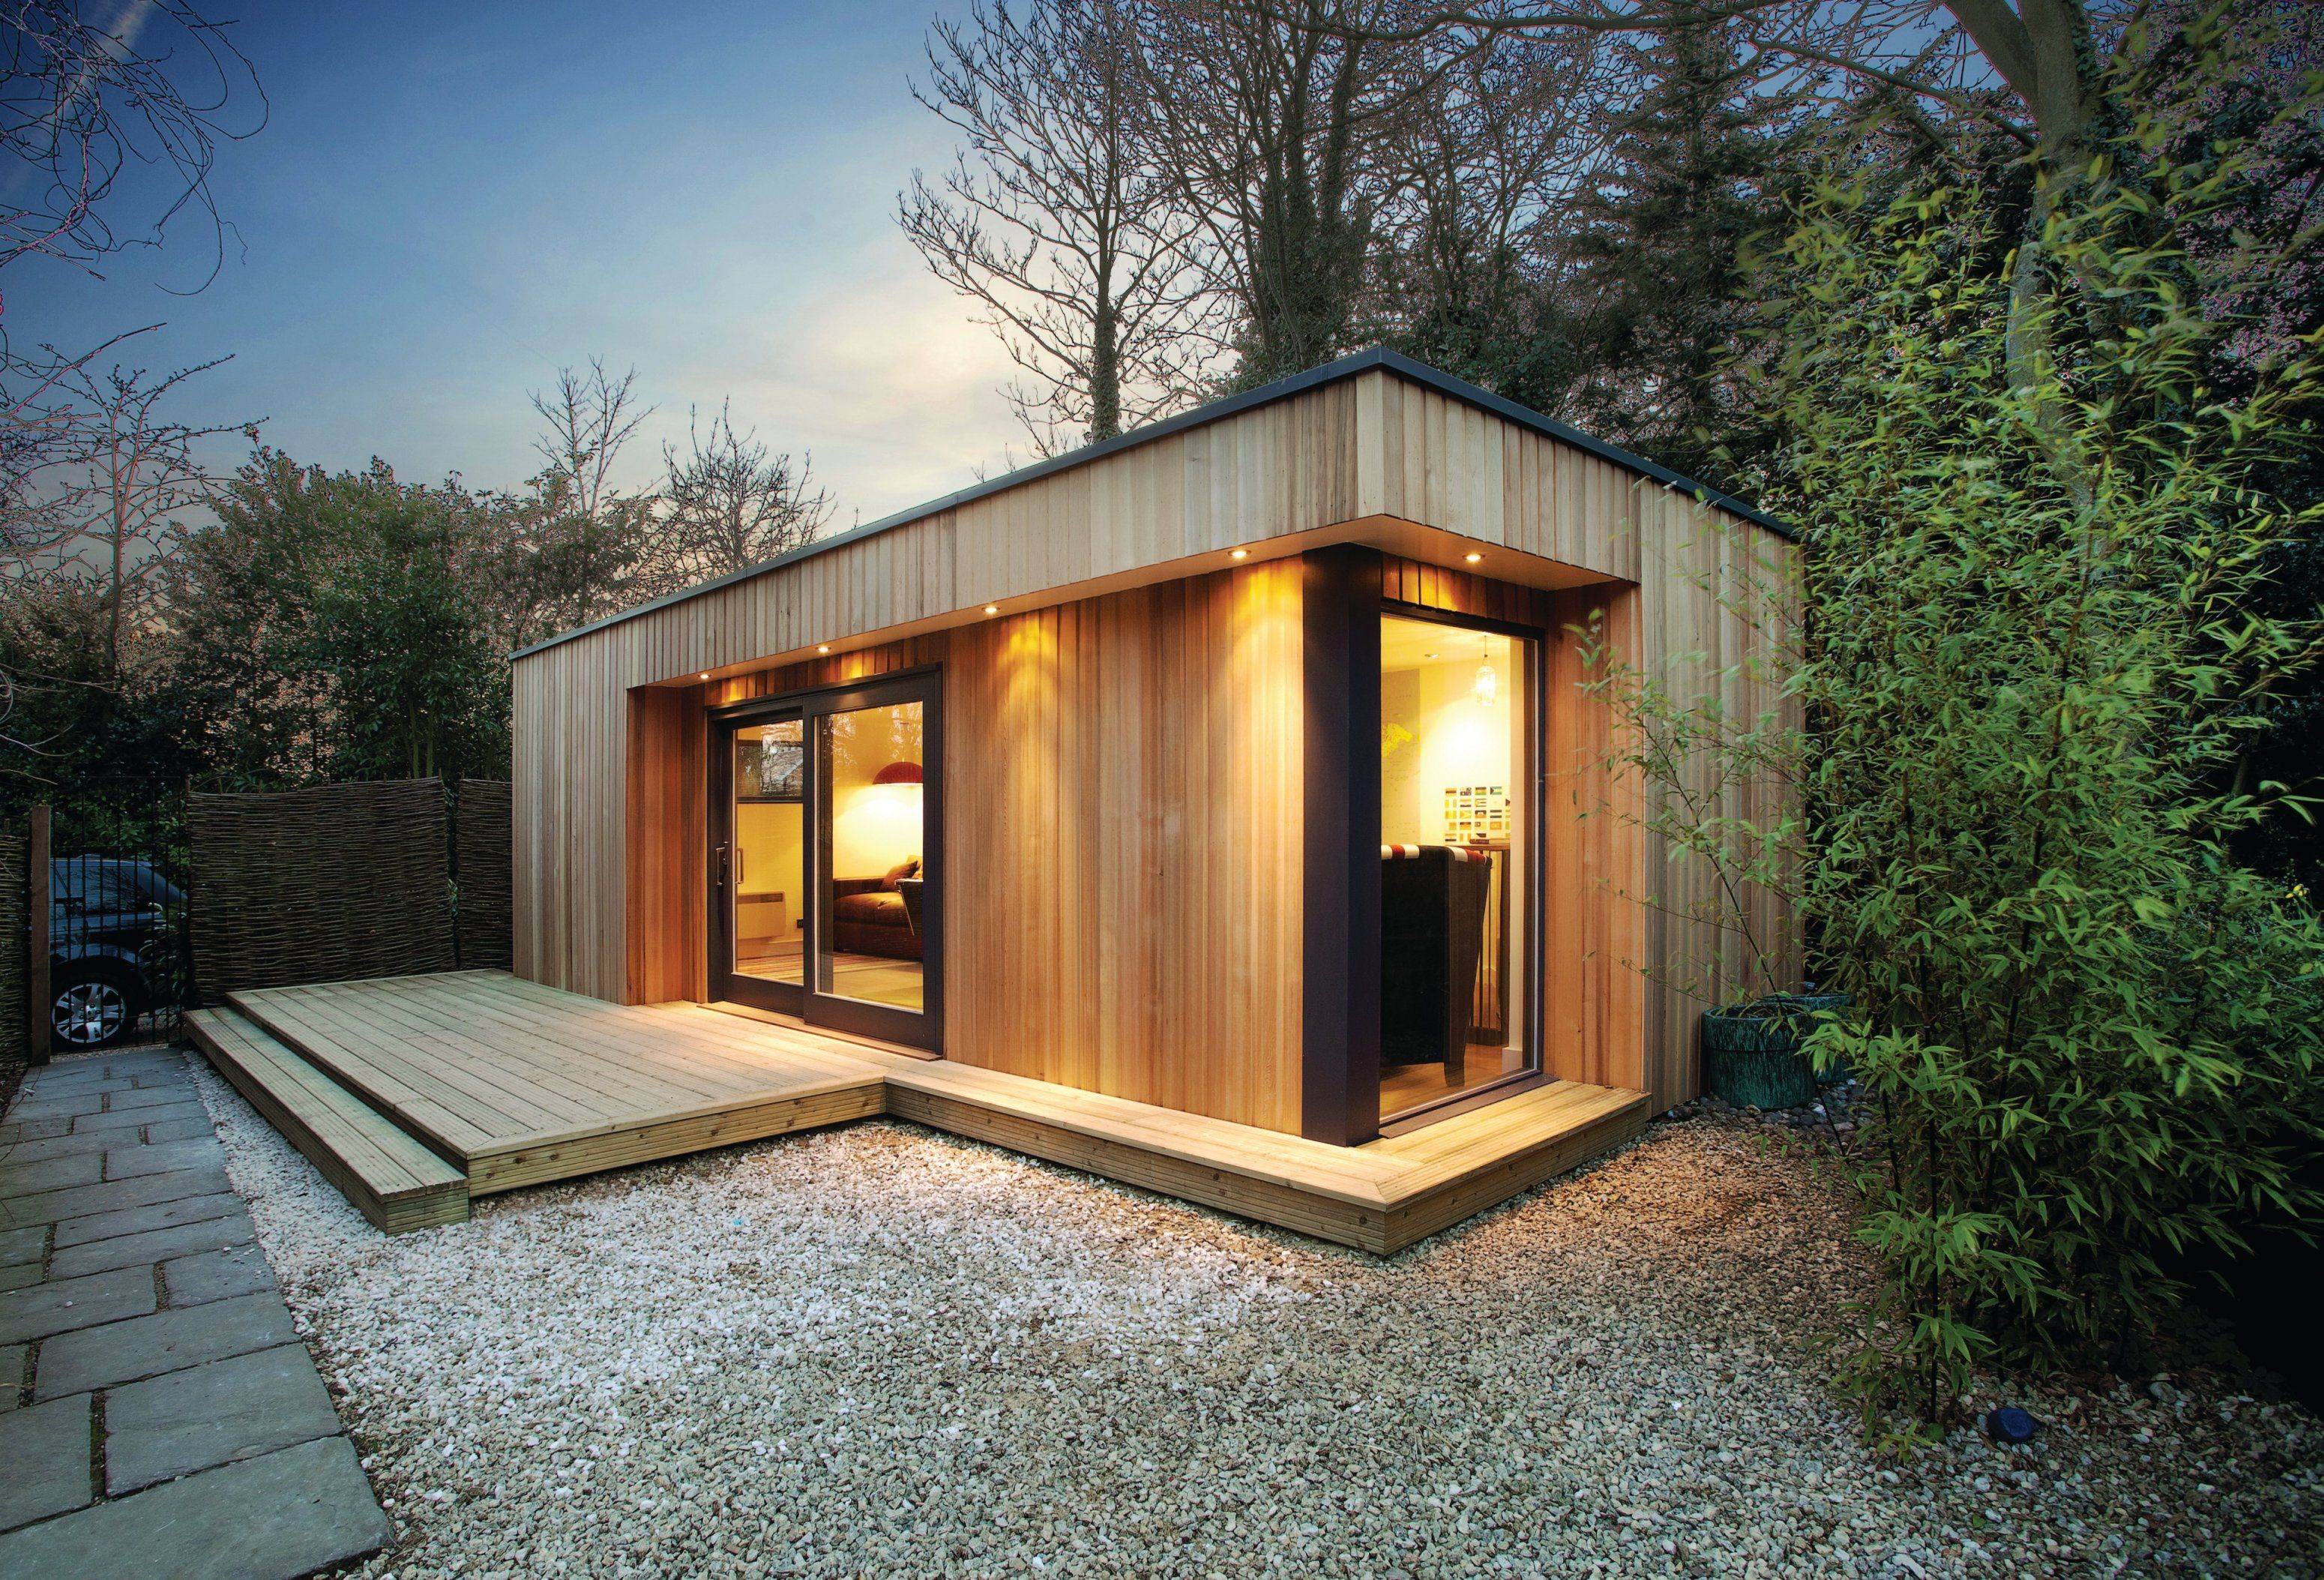 Westbury Garden Room Designs The Garden Room Guide Container House Container Homes Cost Pre Fab Tiny House